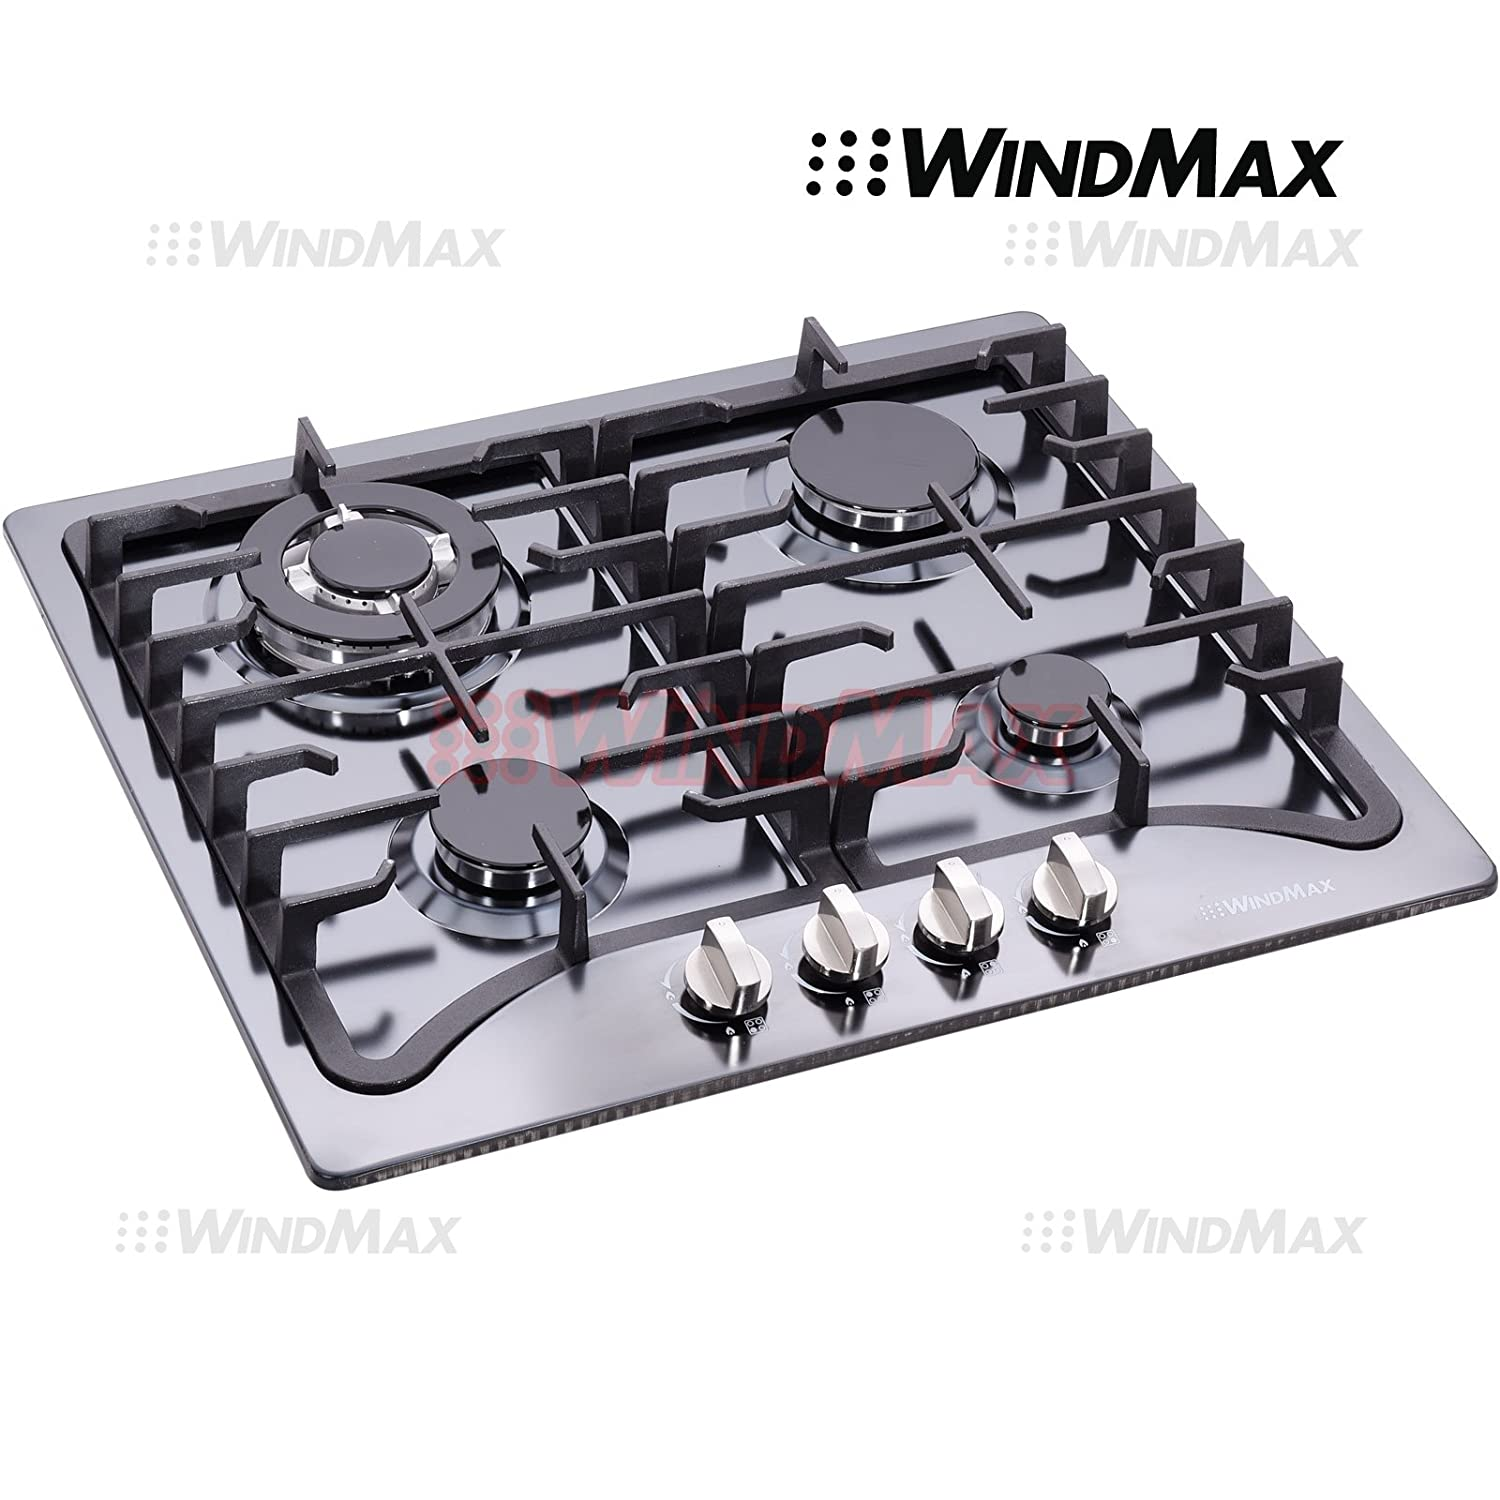 "WindMax® 23"" Black Titanium Stainless Steel 4 Burner Built-In Stove LPG/NG Gas Cooktops Cooker"